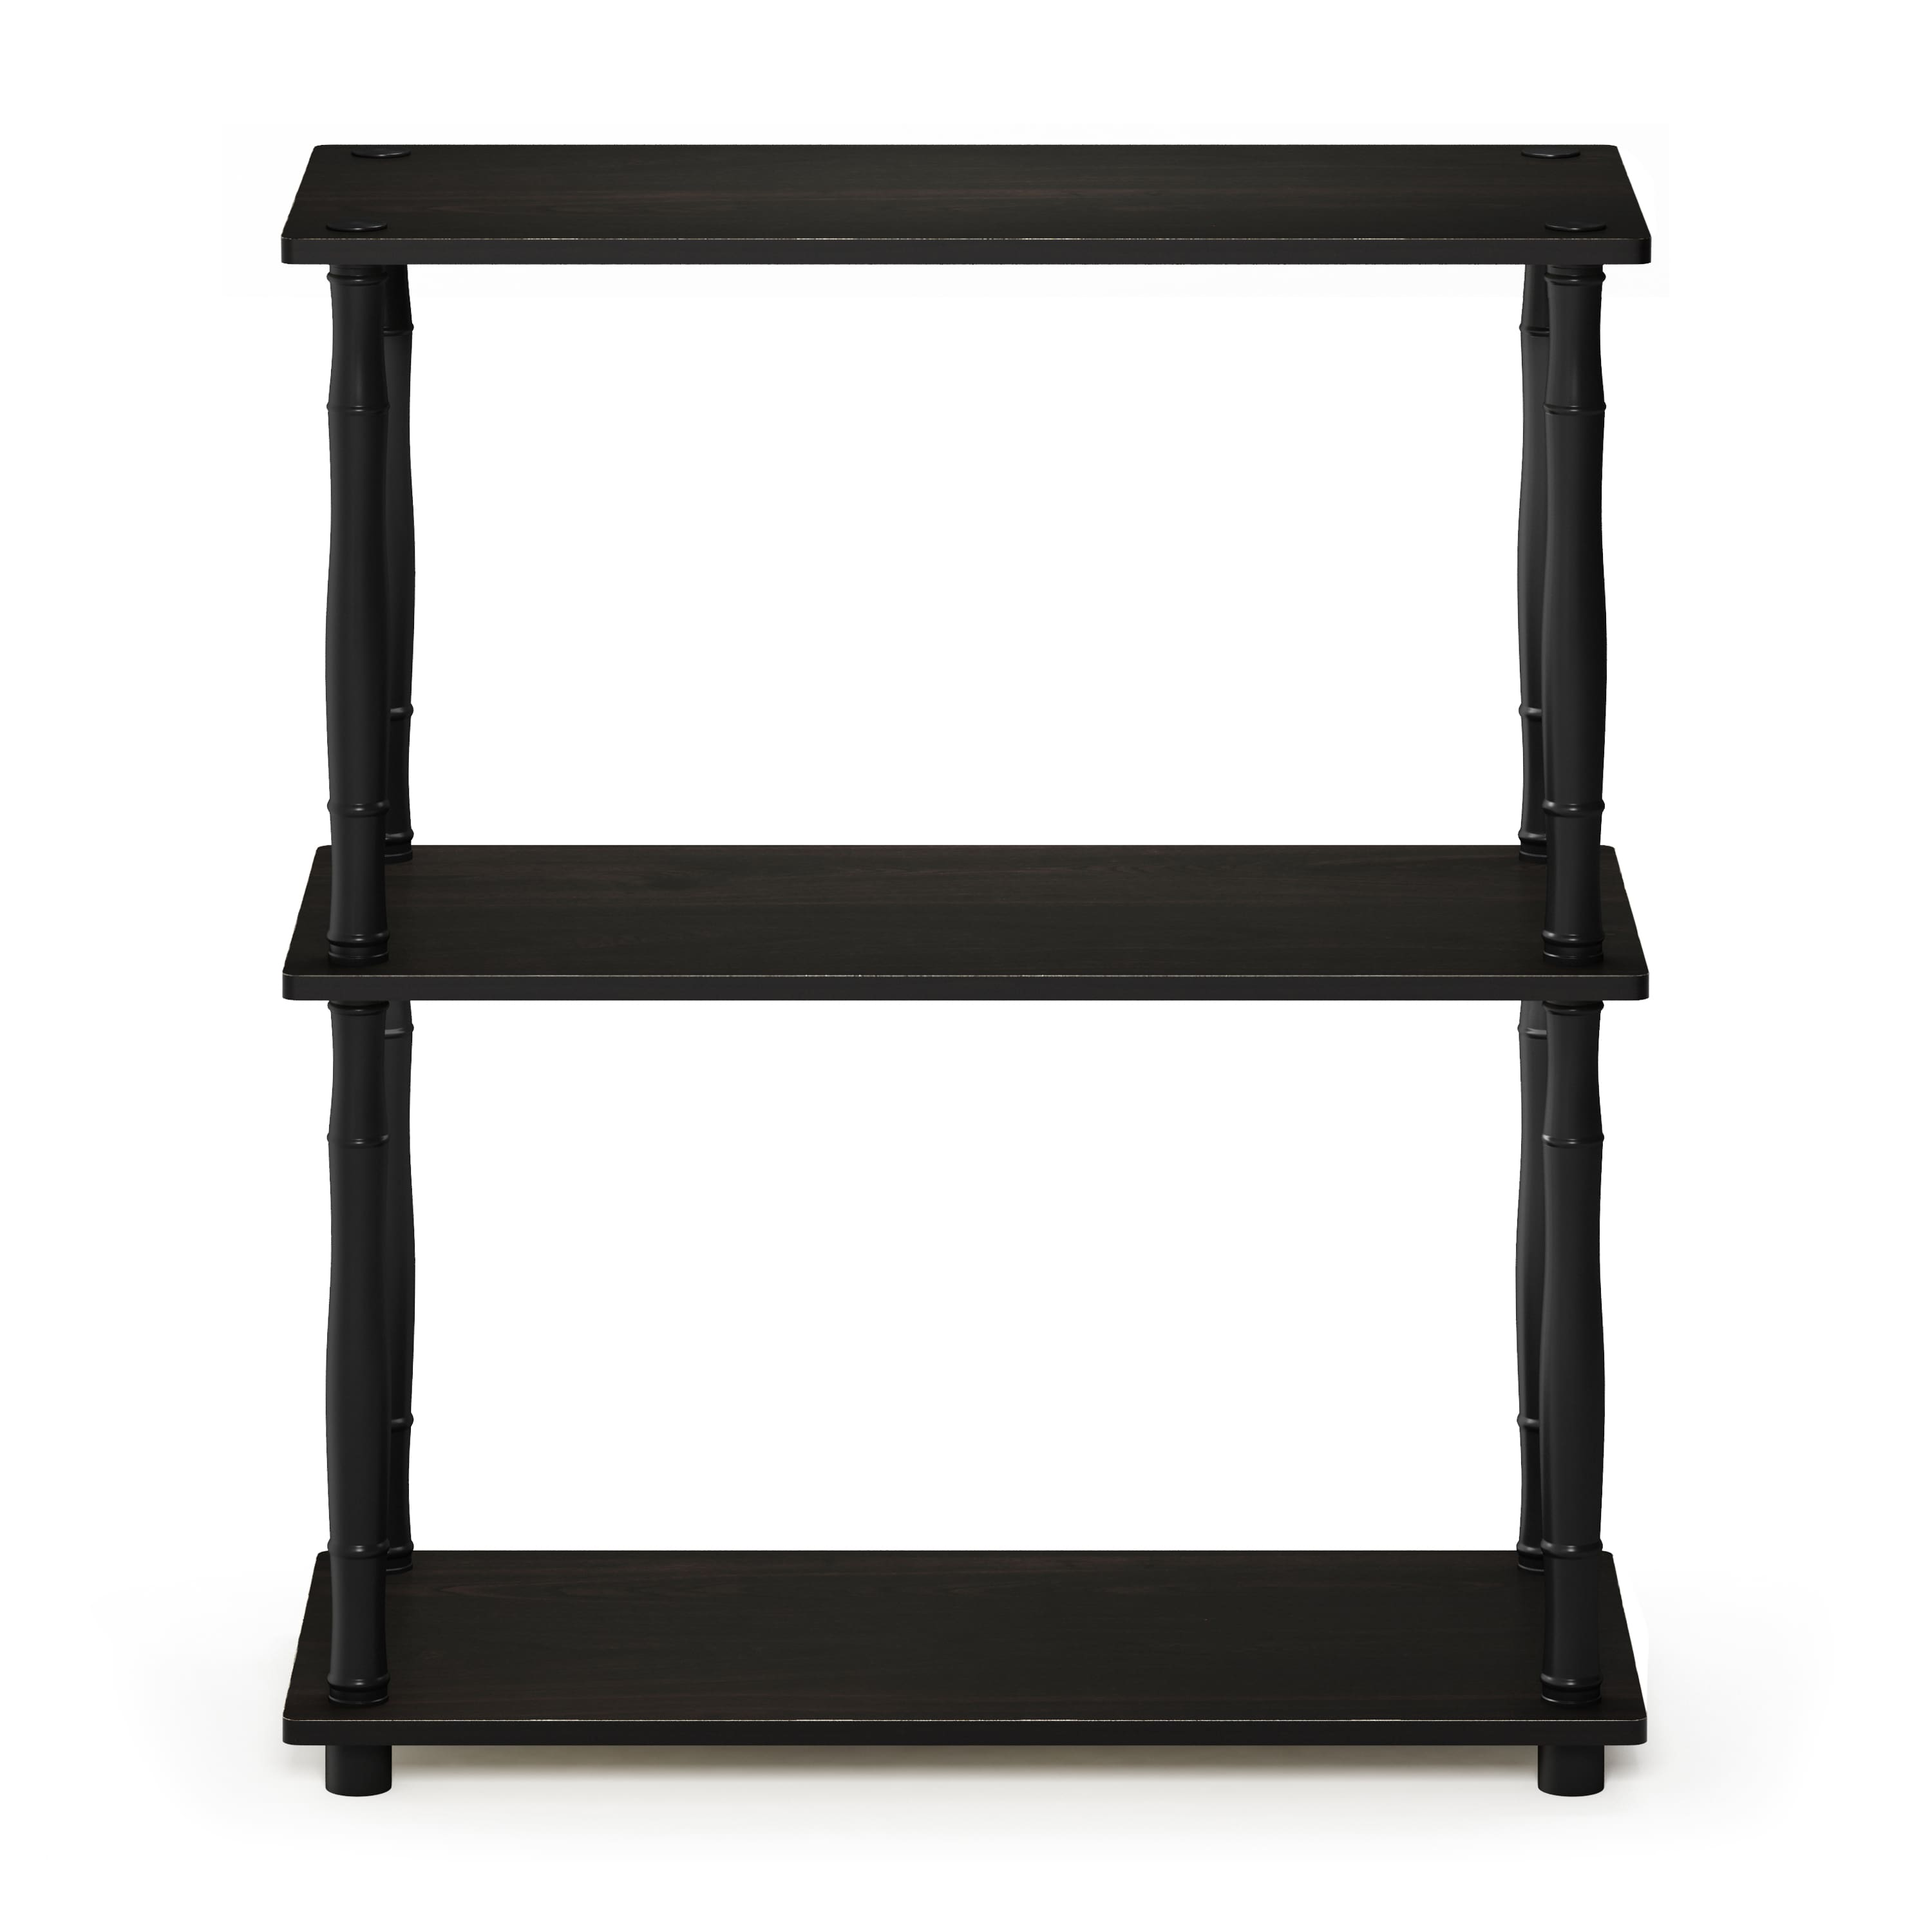 Furinno 3-Tier Turn-N-Tube Display Rack w/ Classic Tube (Espresso & Black) $17.64 at Walmart w/ Store Pickup Discount | $18.32 at Amazon/Home Depot